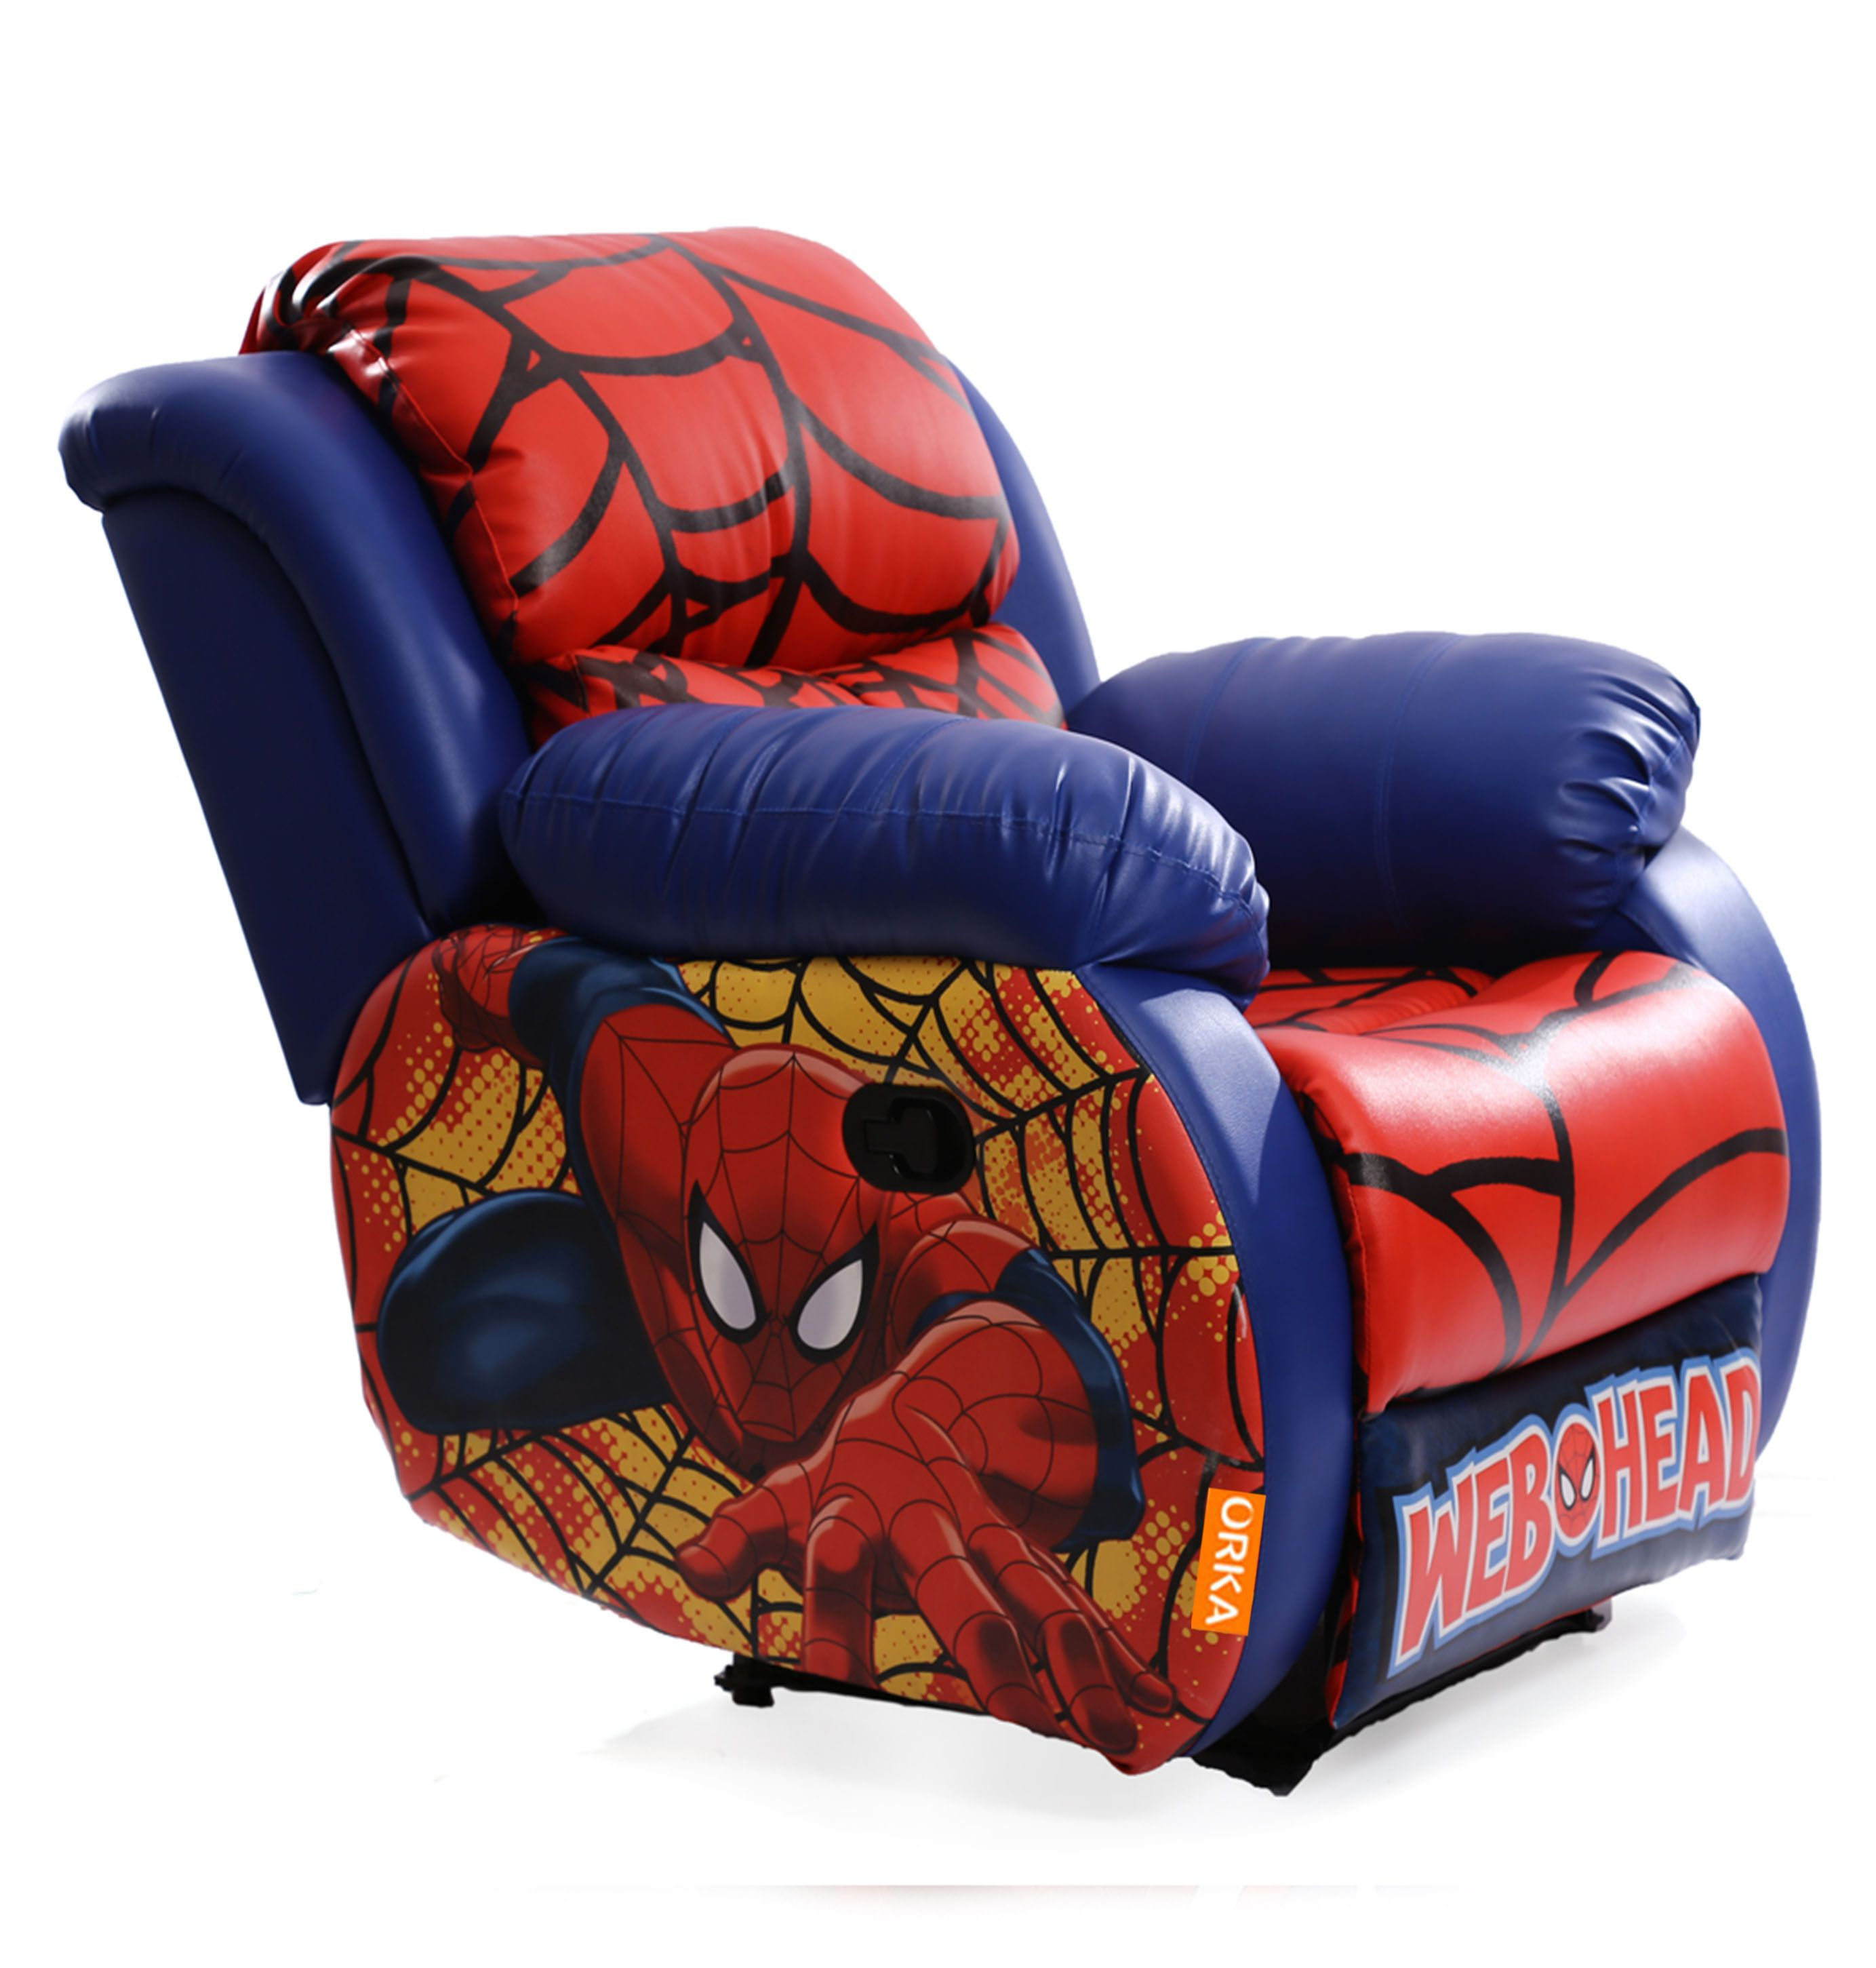 Orka Marvel Spider Man Recliner Buy Orka Marvel Spider Man